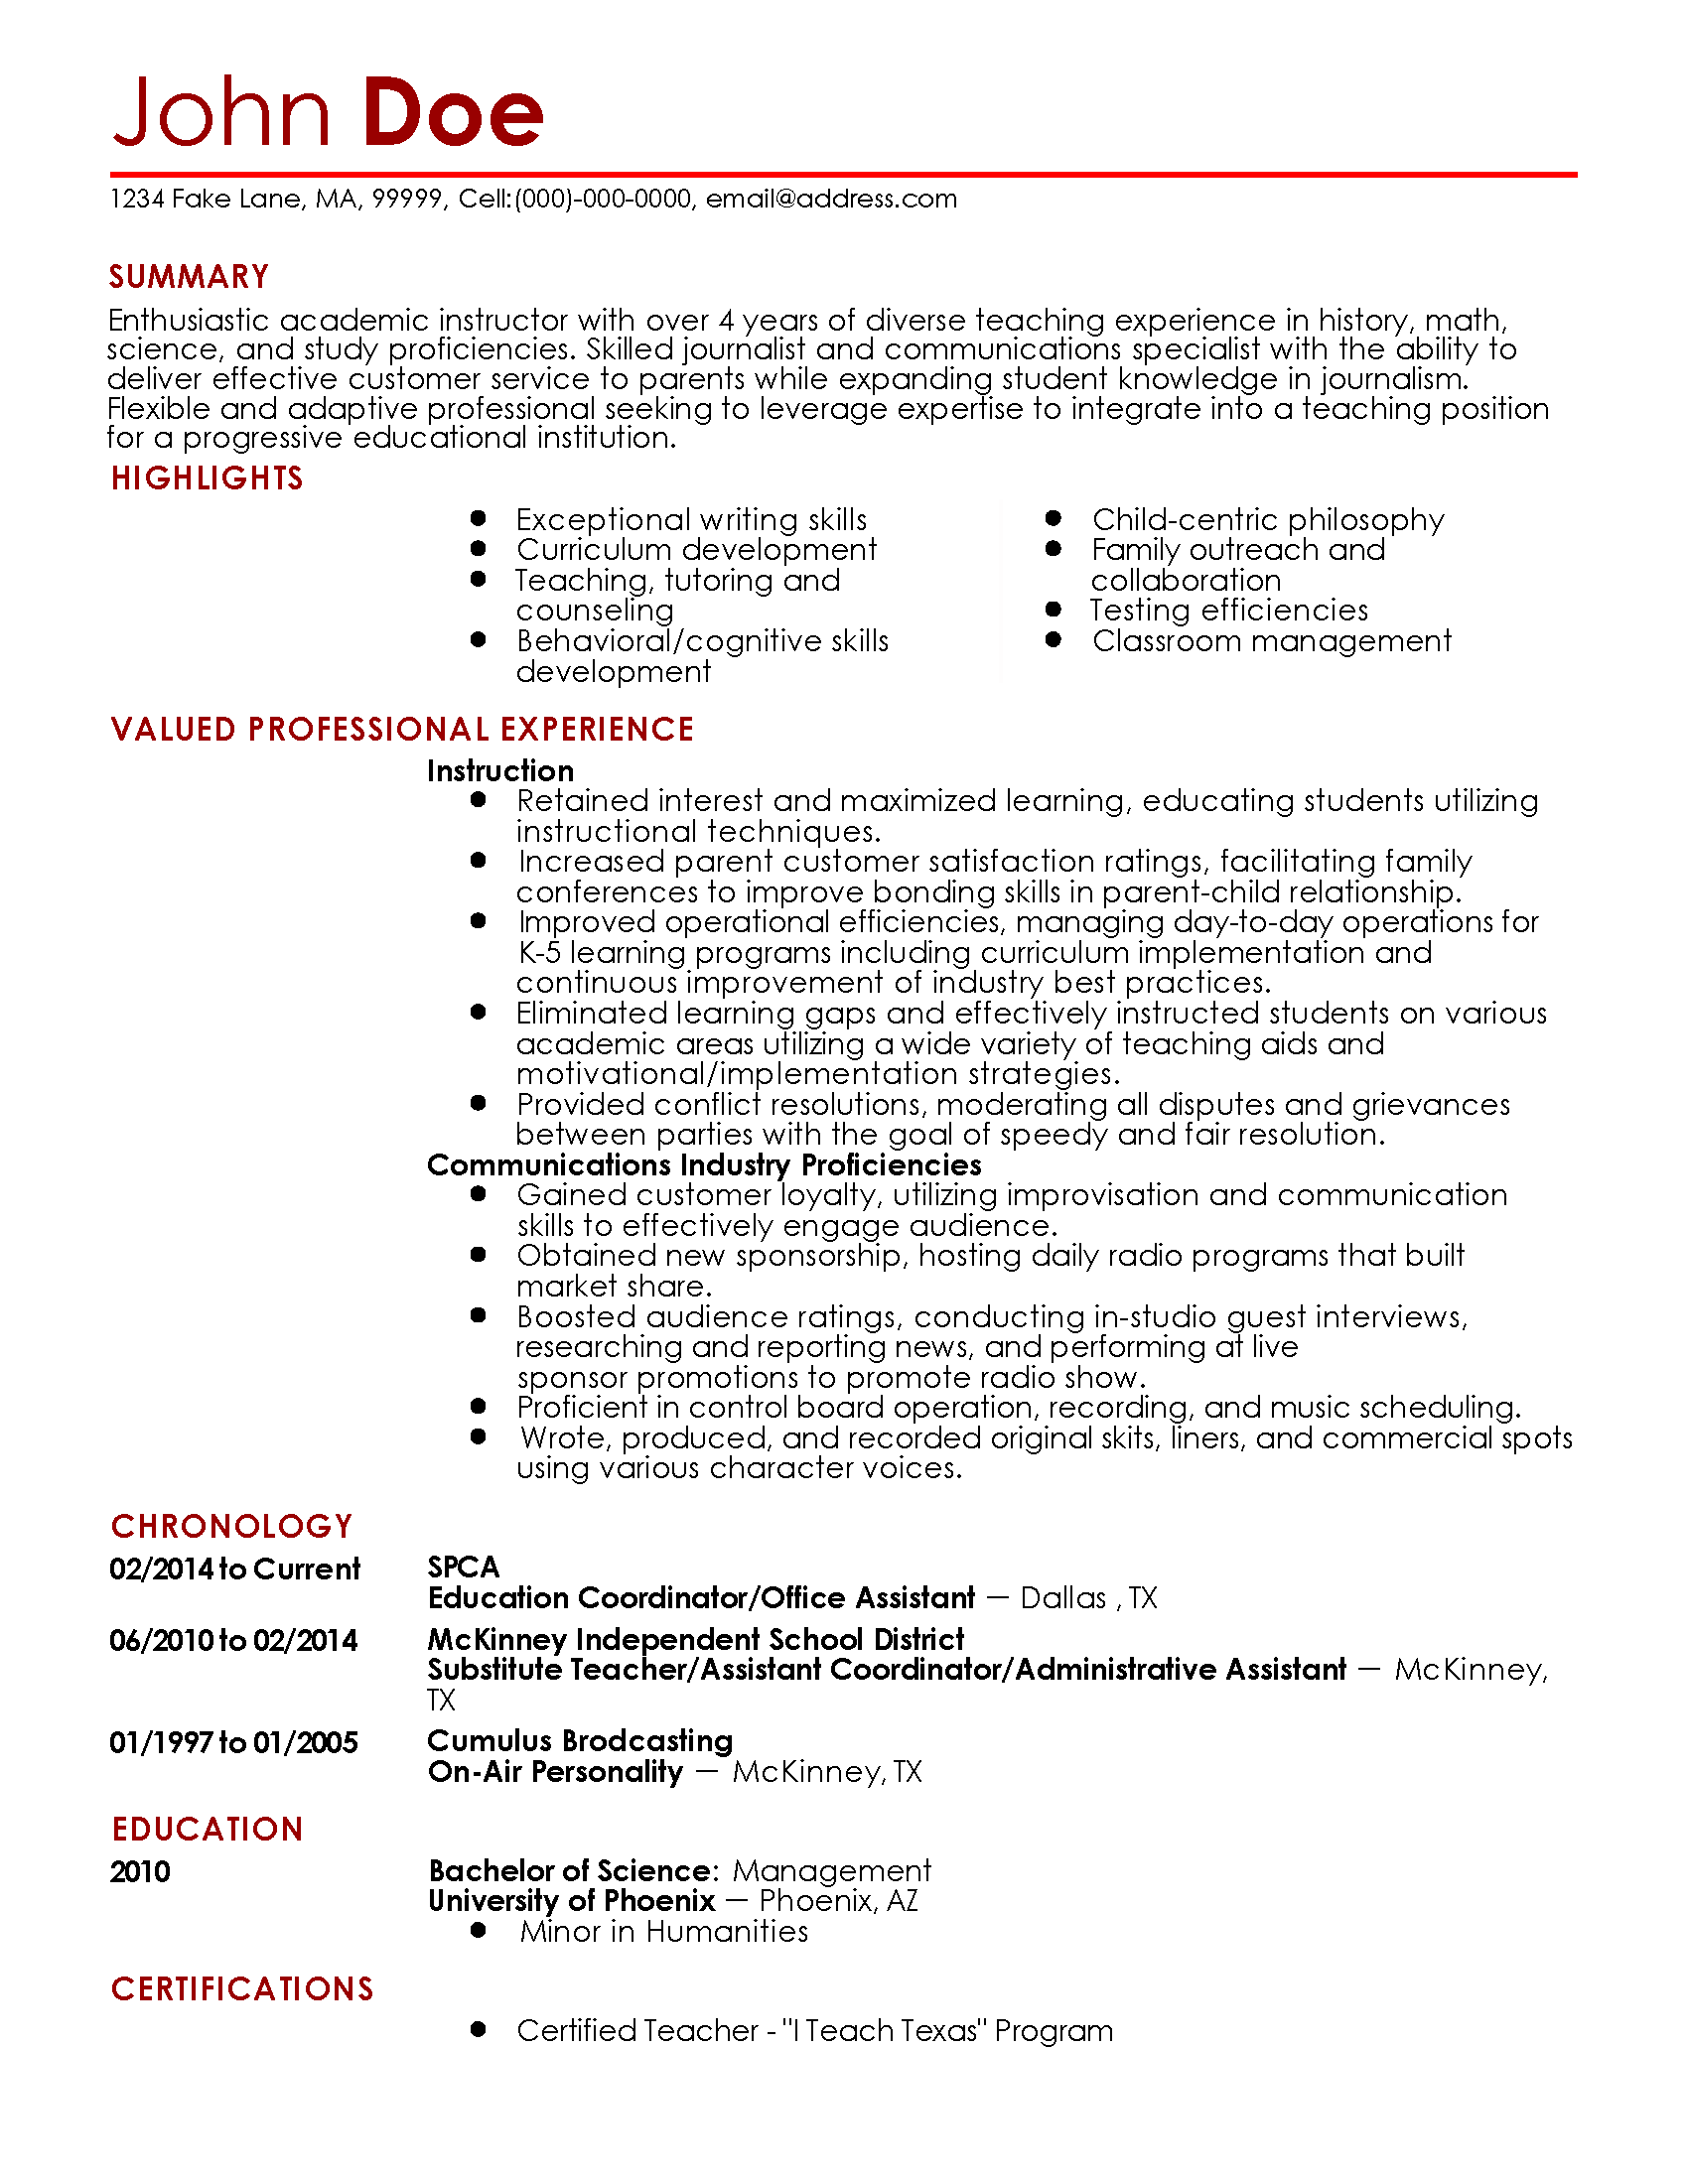 Professional Resume Writing Programs Professional Resume Writing Services  Resumesplanet Professional Journalism Teacher Templates To Showcase Your